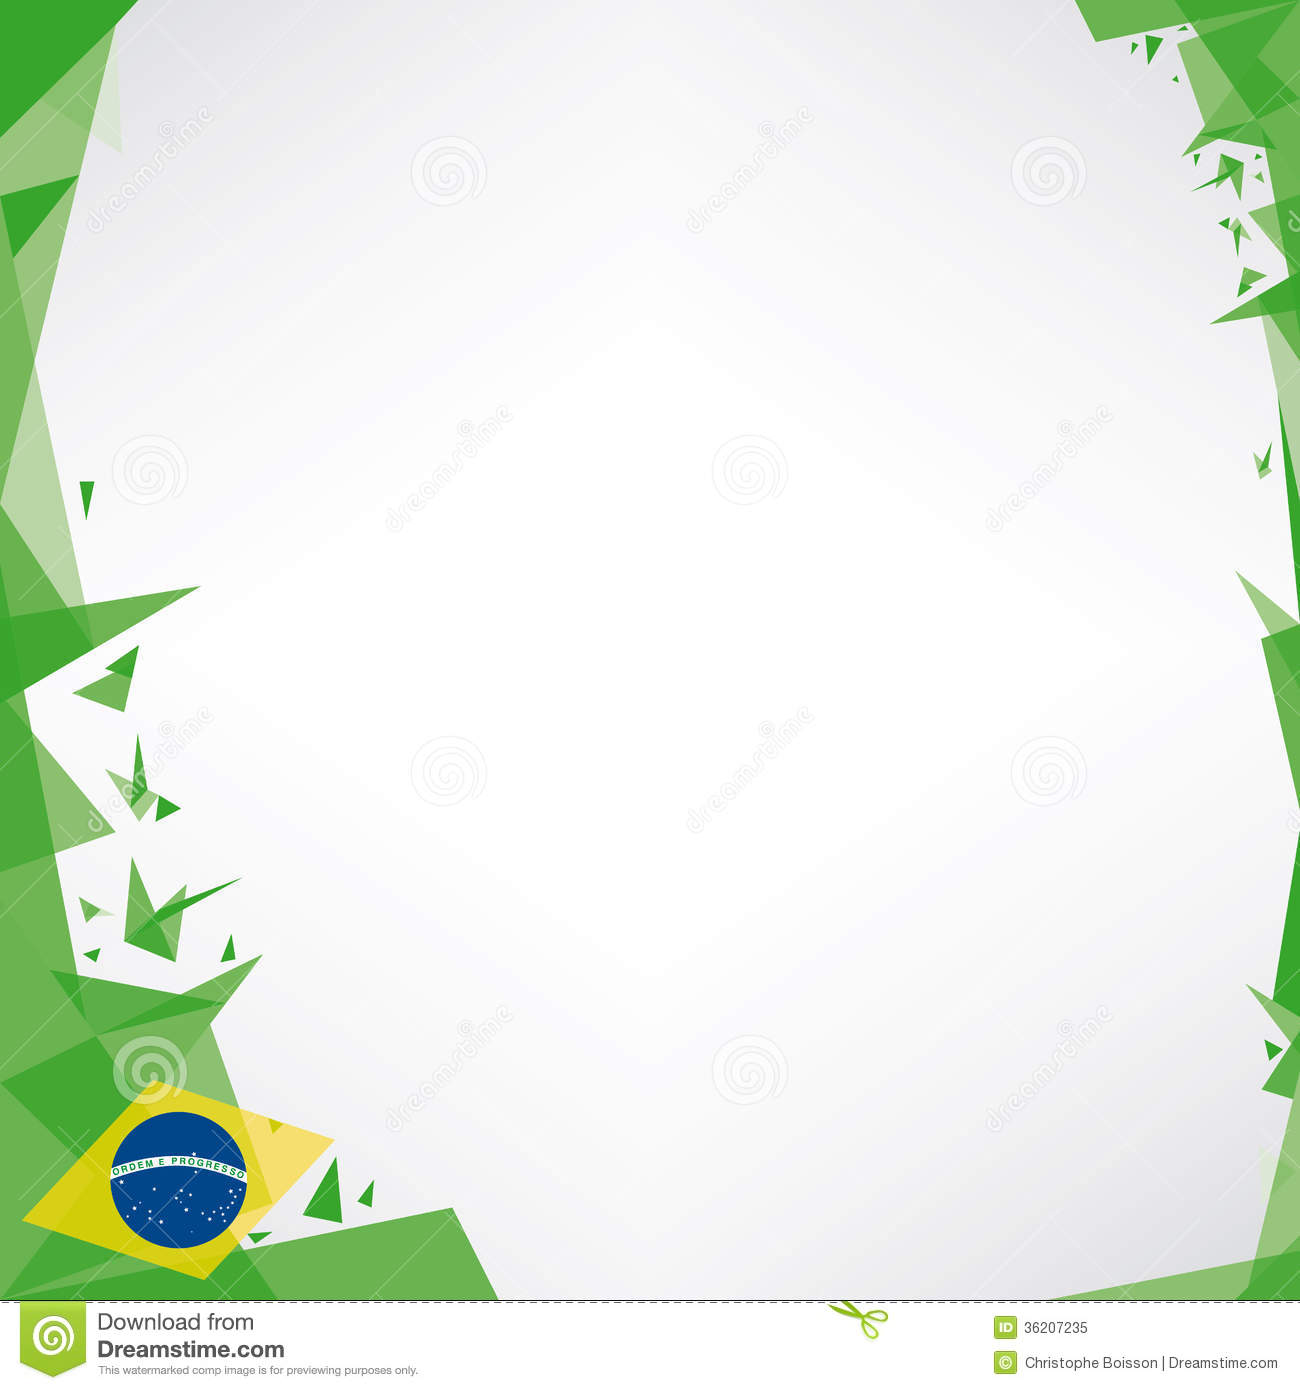 Background Square Origami Of Brazil Royalty Free Stock